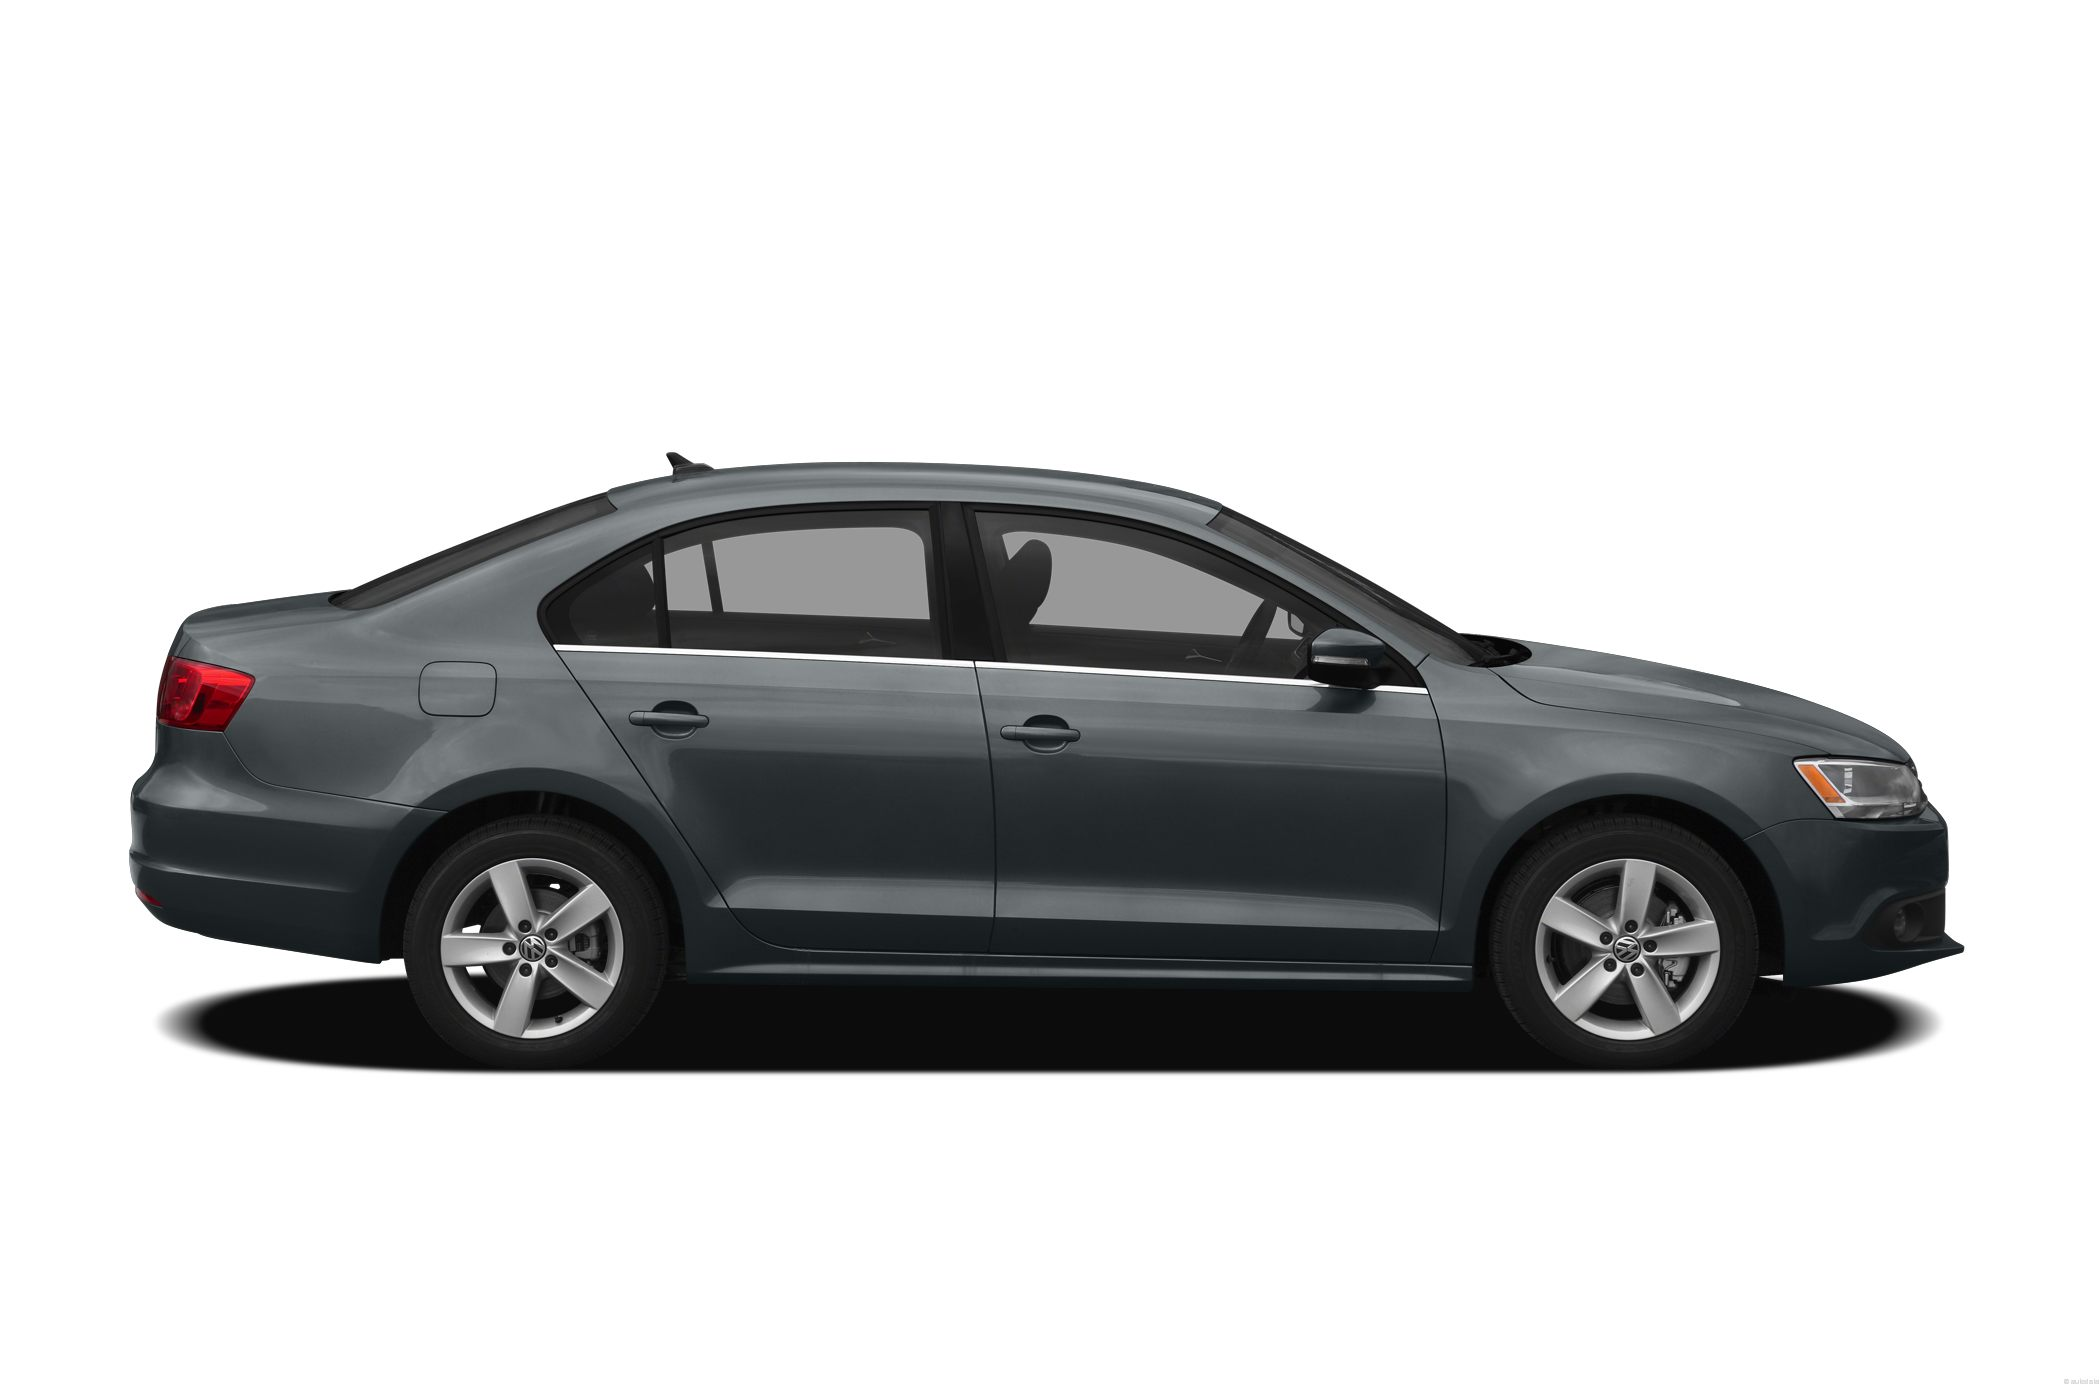 volkswagen jetta 2 0 2012 technical specifications. Black Bedroom Furniture Sets. Home Design Ideas